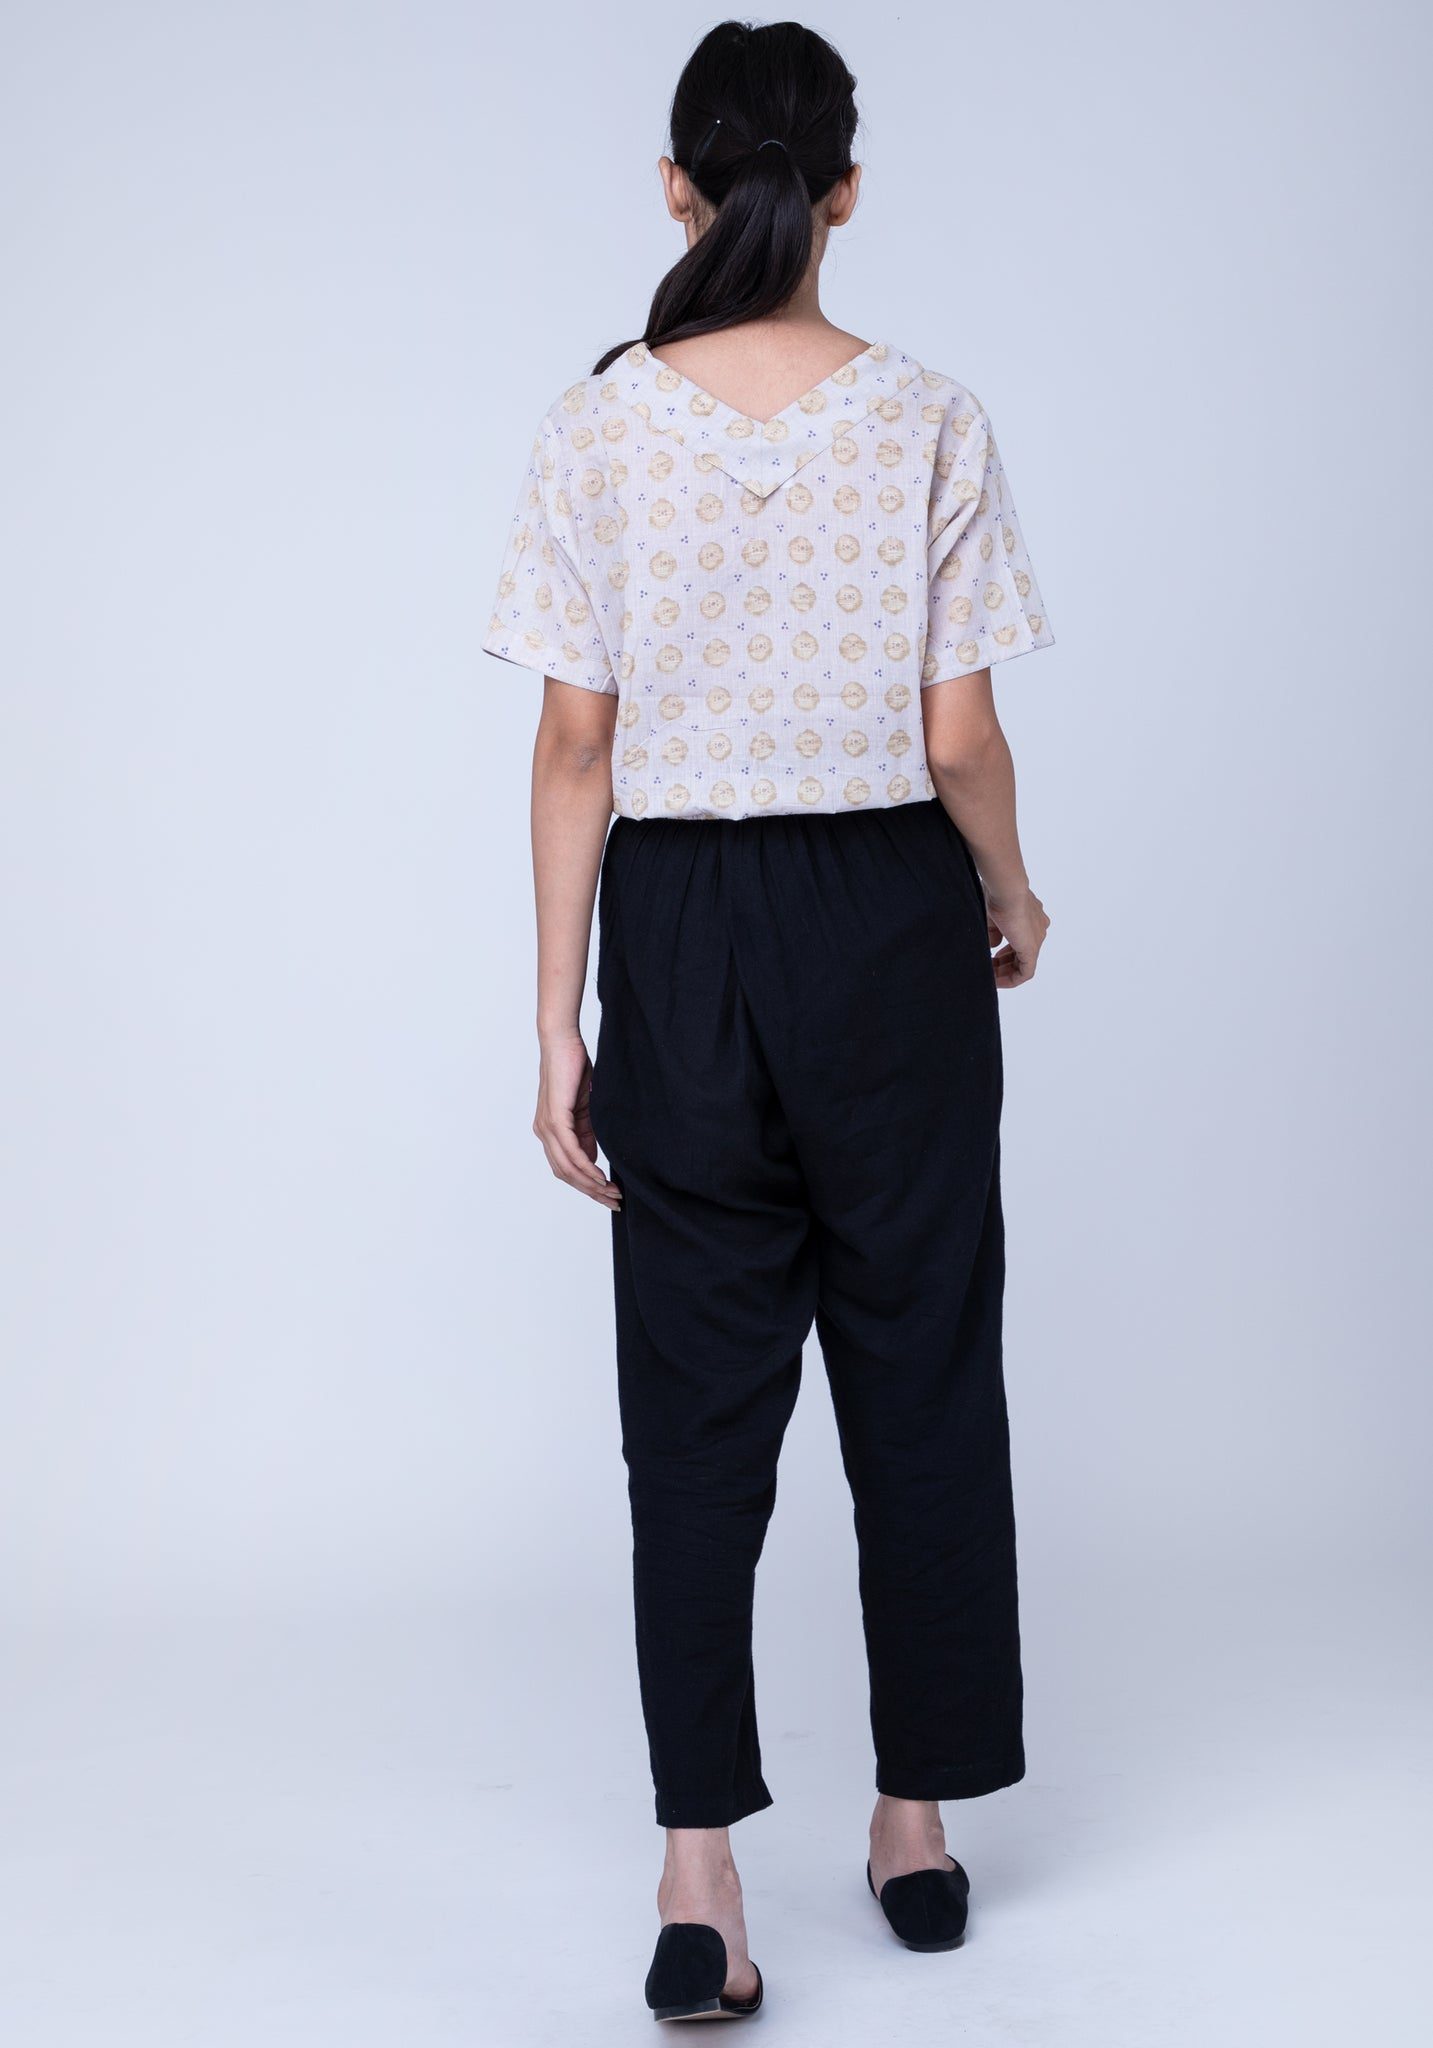 Naviyata Bottom Knotted Crop Shirt